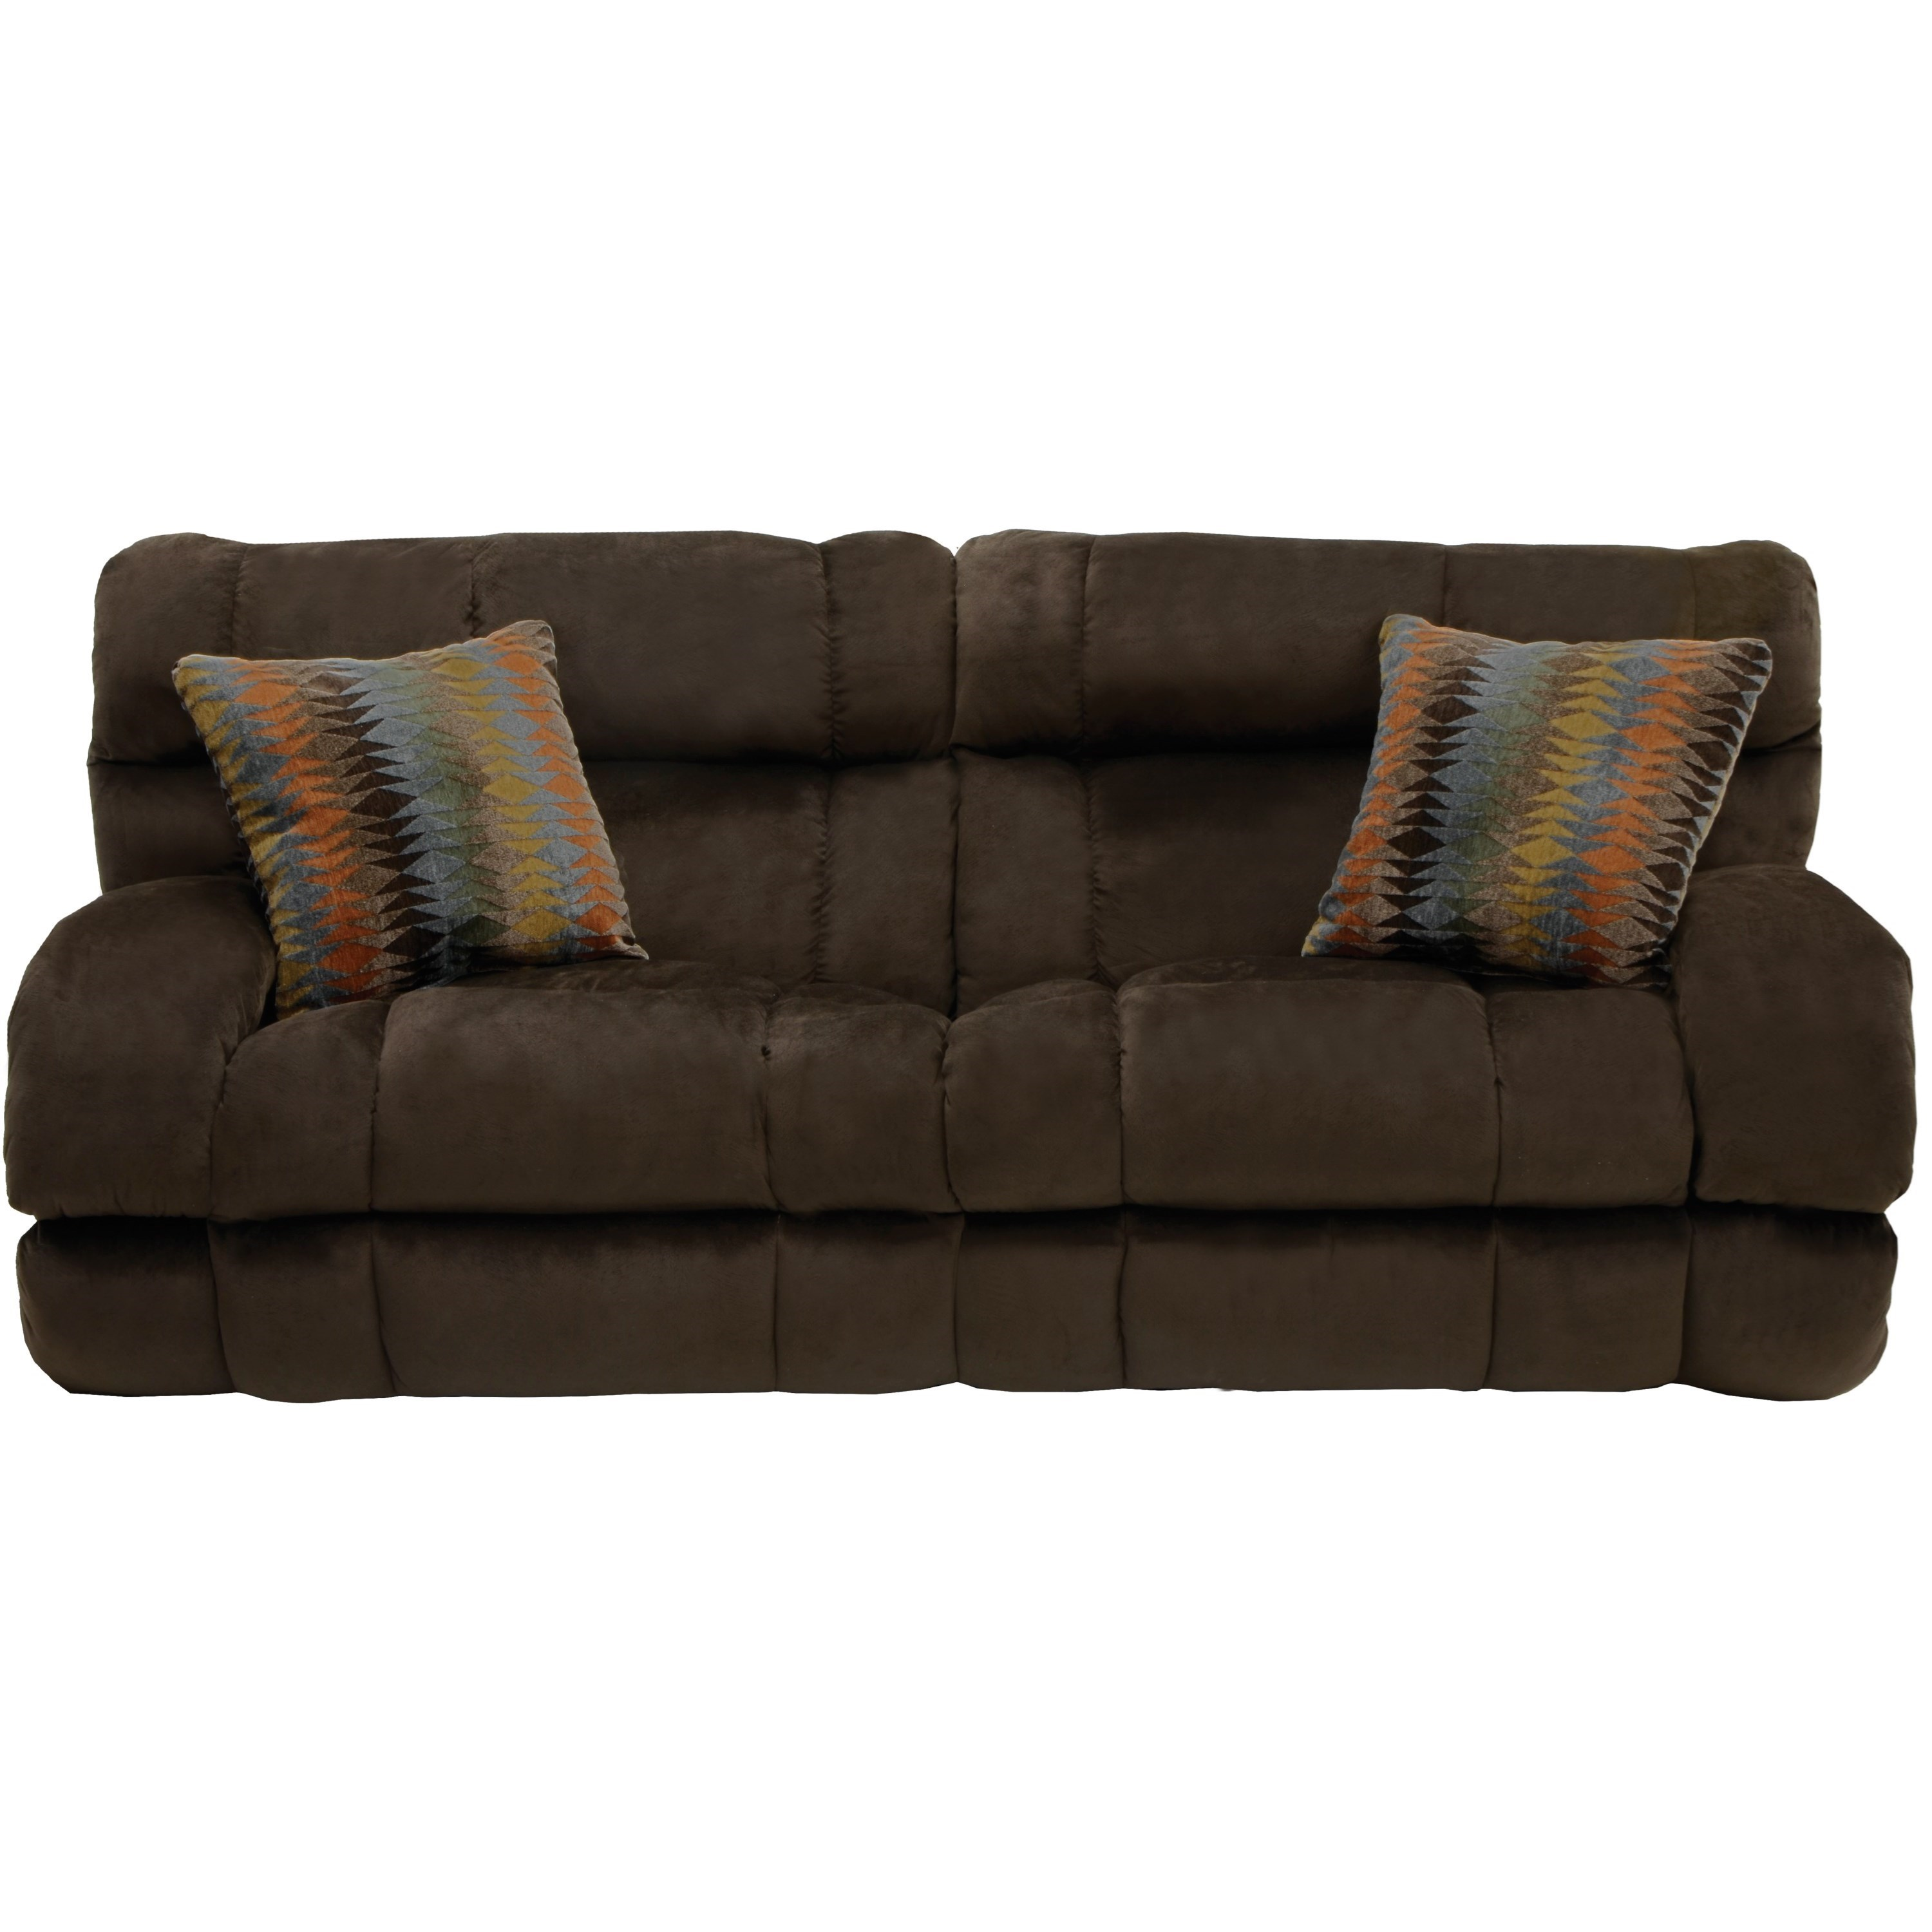 Queen Sleeper Sofa With Extra Wide Seats By Catnapper